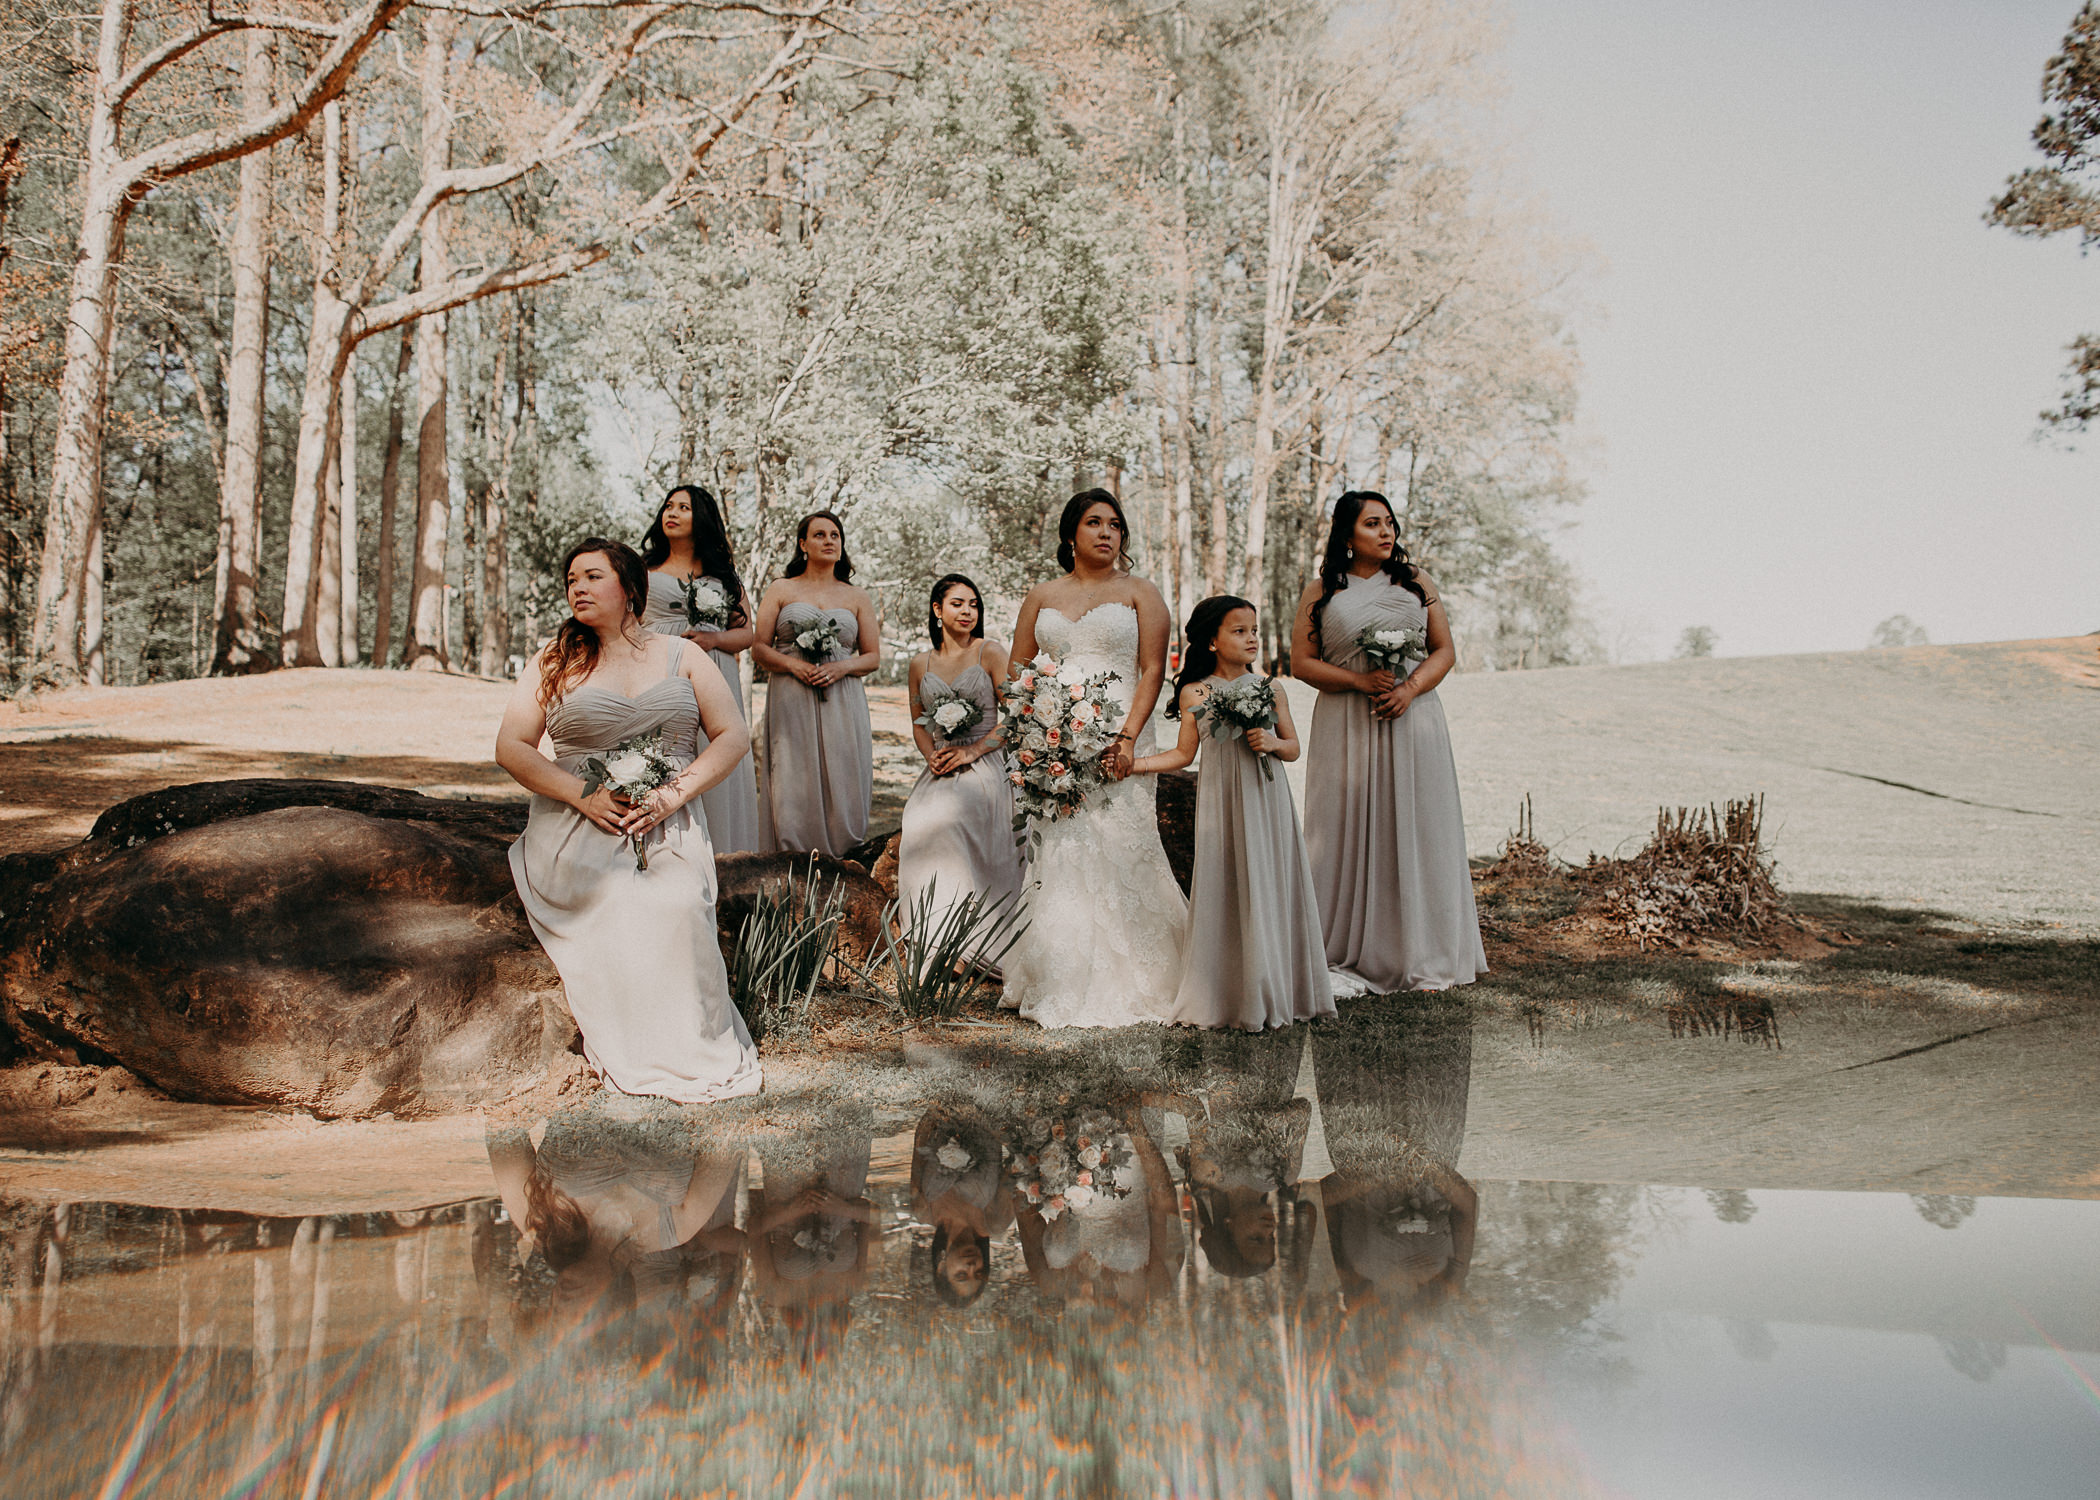 22  - Little River Farms - first look - Atlanta - Wedding Venue - Atlanta Wedding Photographer - Georgia weddings details wedding dress shoes gather groom bridal party .jpg